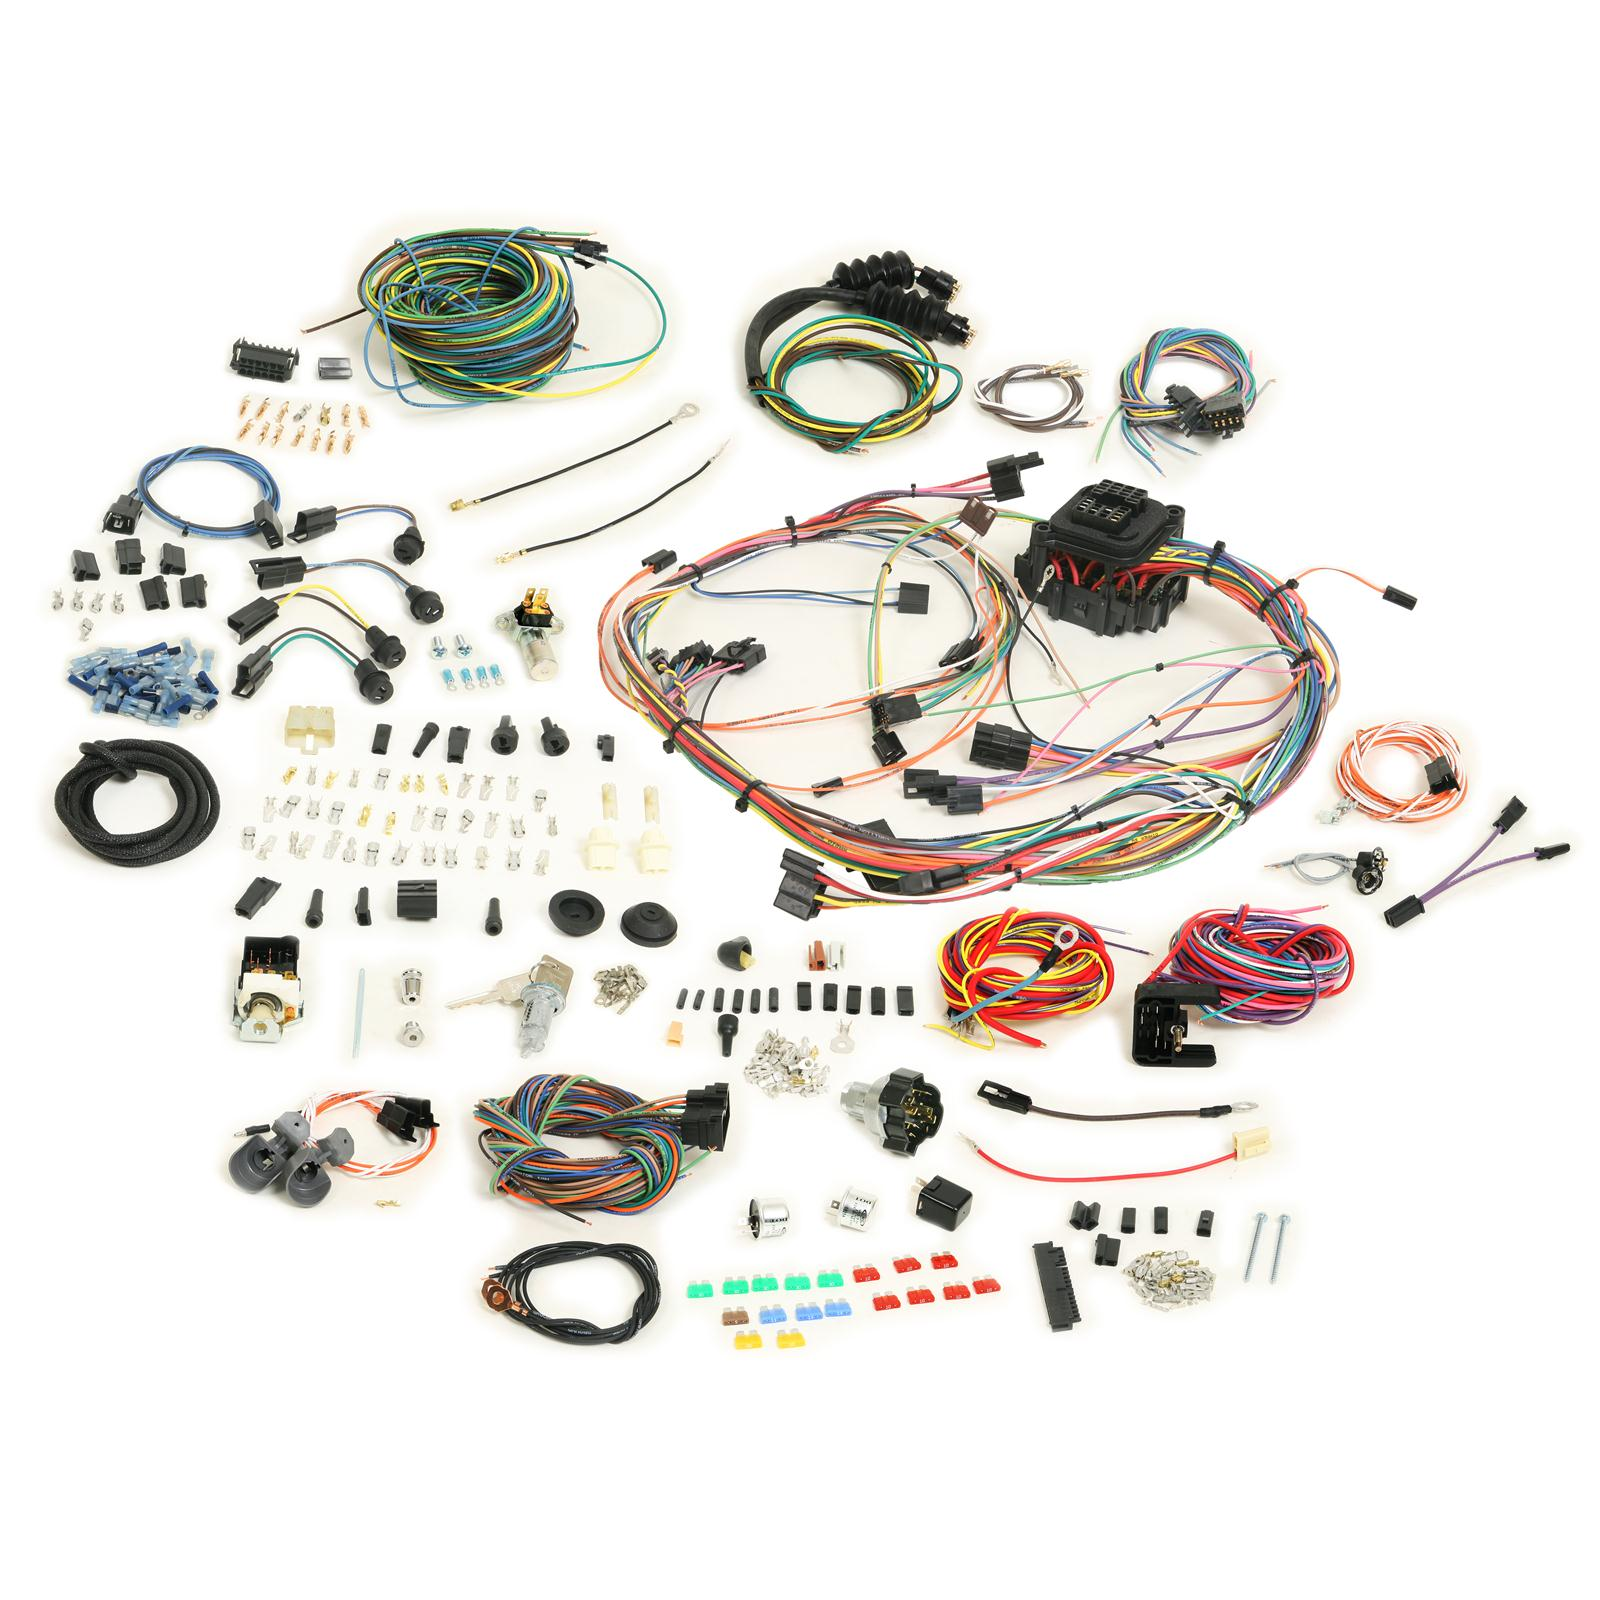 American Autowire Classic Update Series Wiring Harness Kits 510333 Peterbilt Wire Repair Kit Free Shipping On Orders Over 99 At Summit Racing